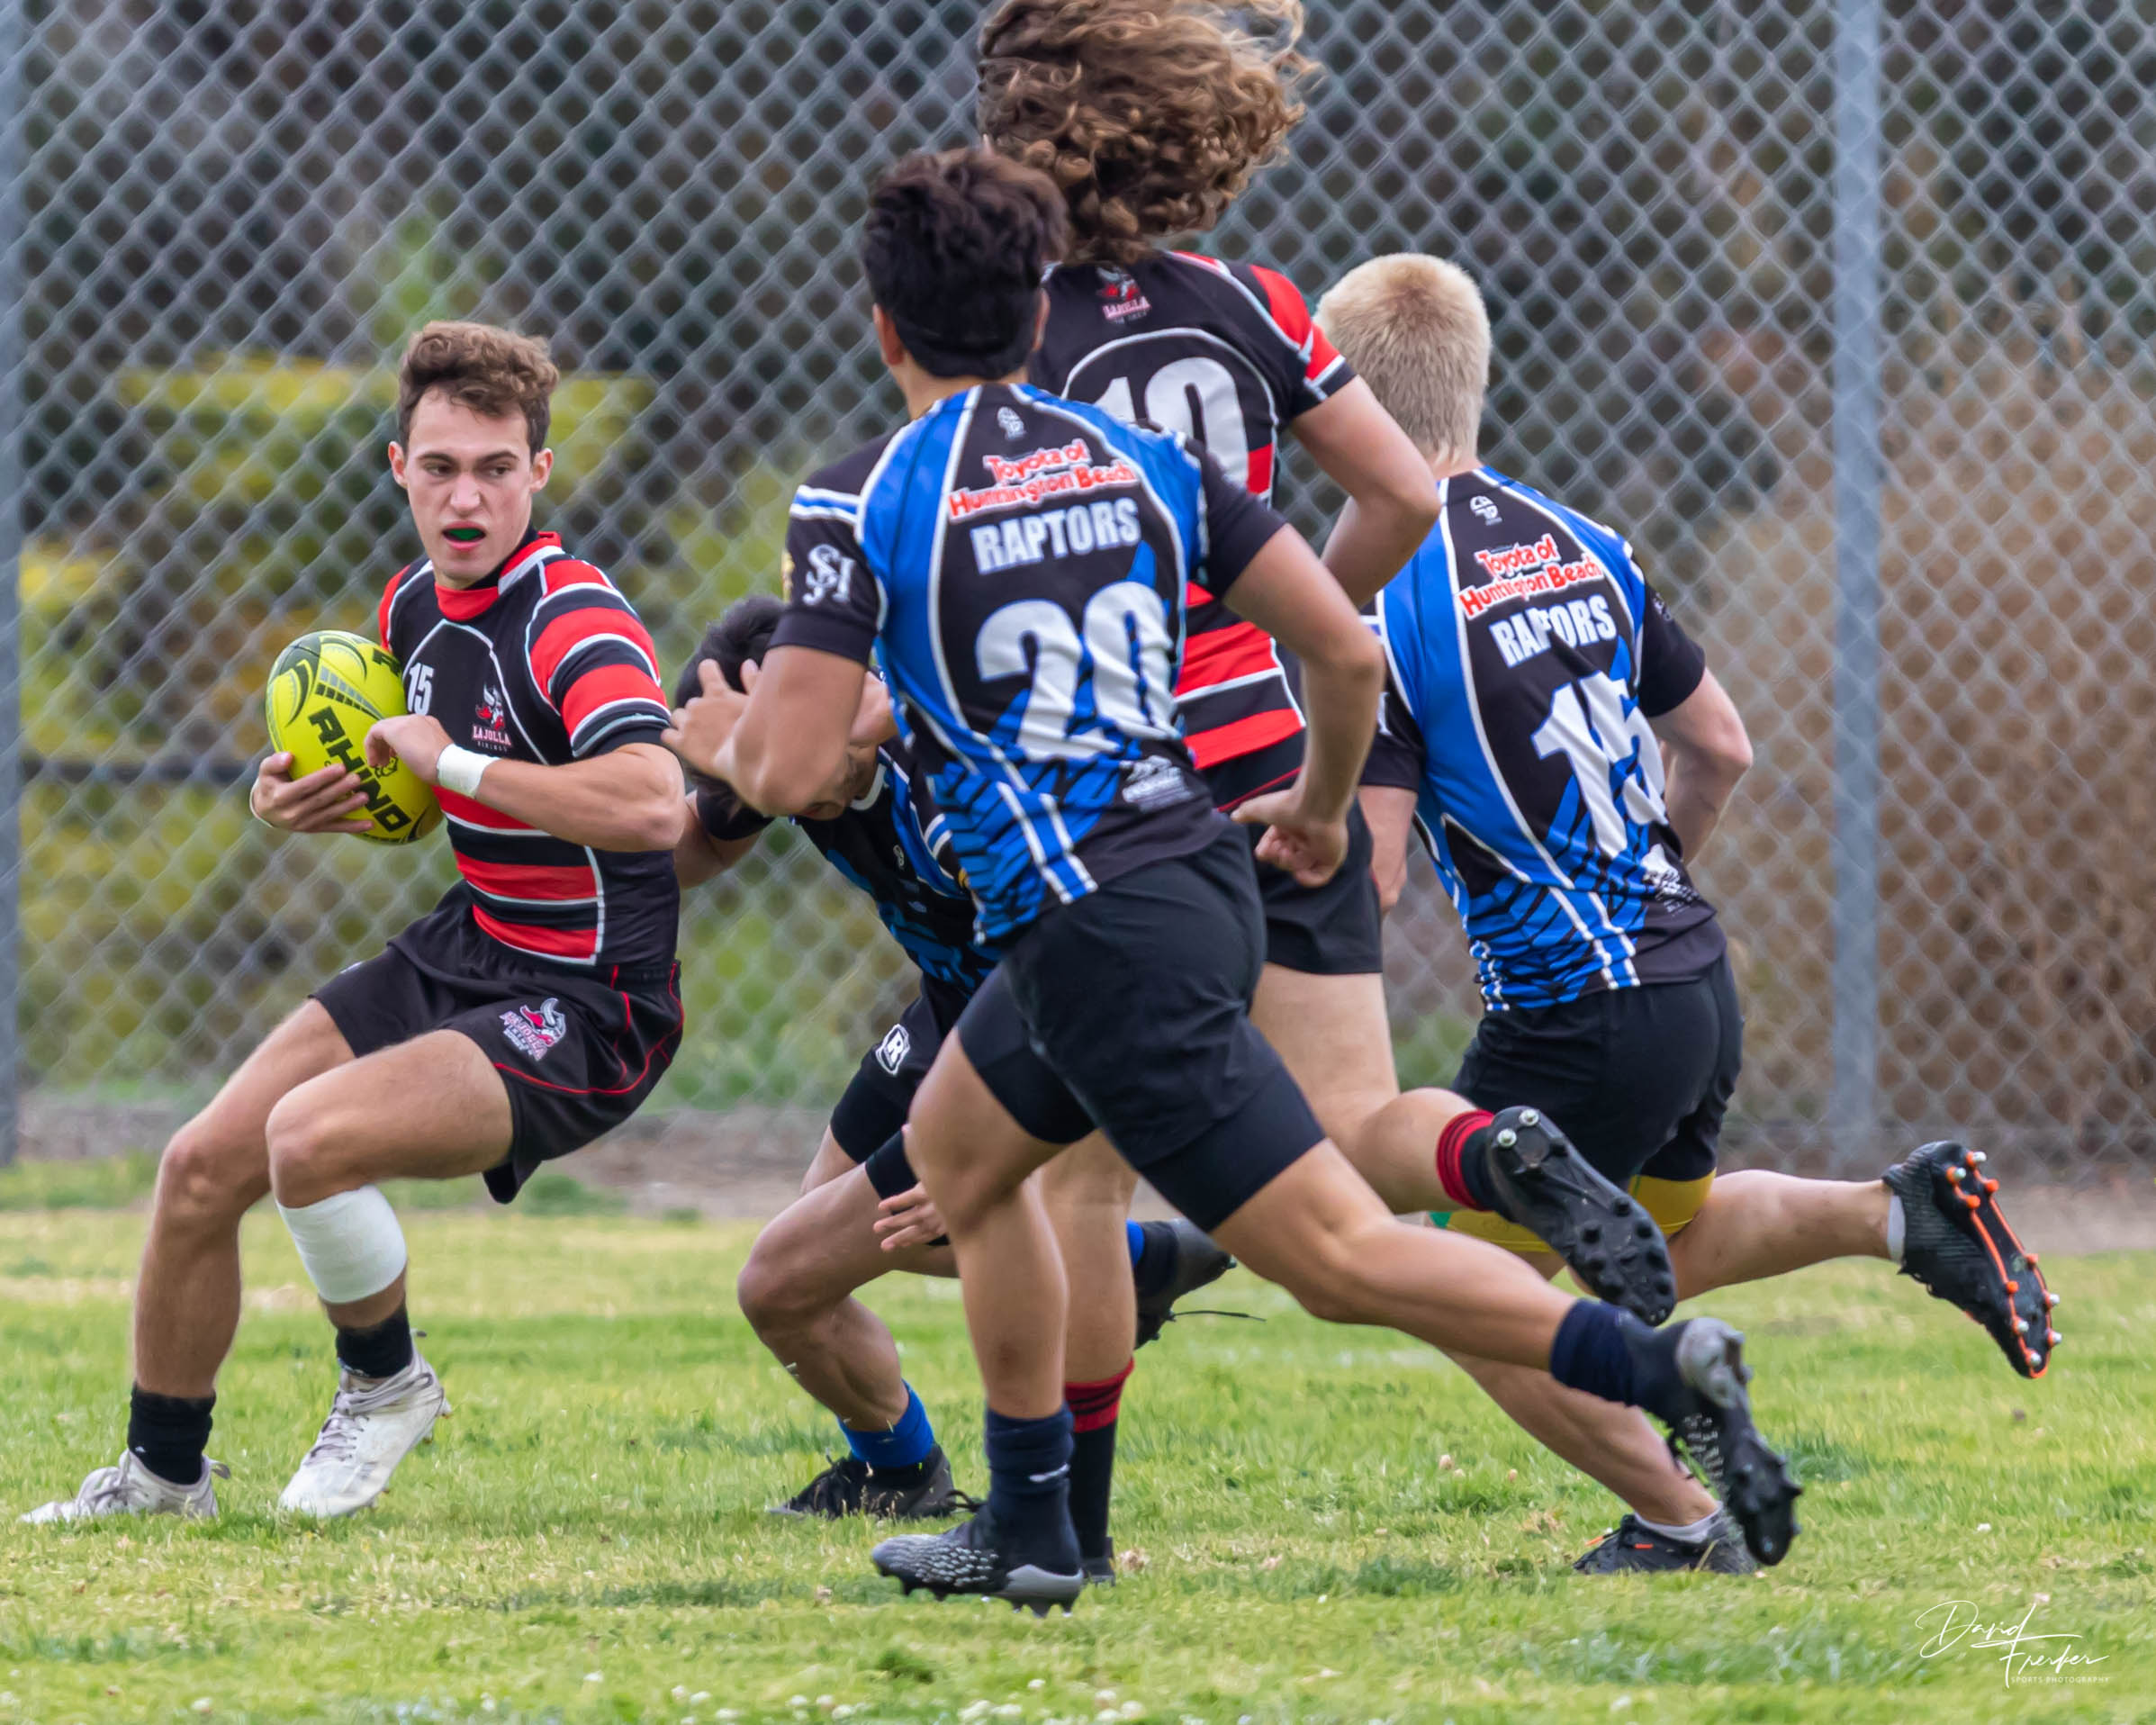 LaJollaRugby8